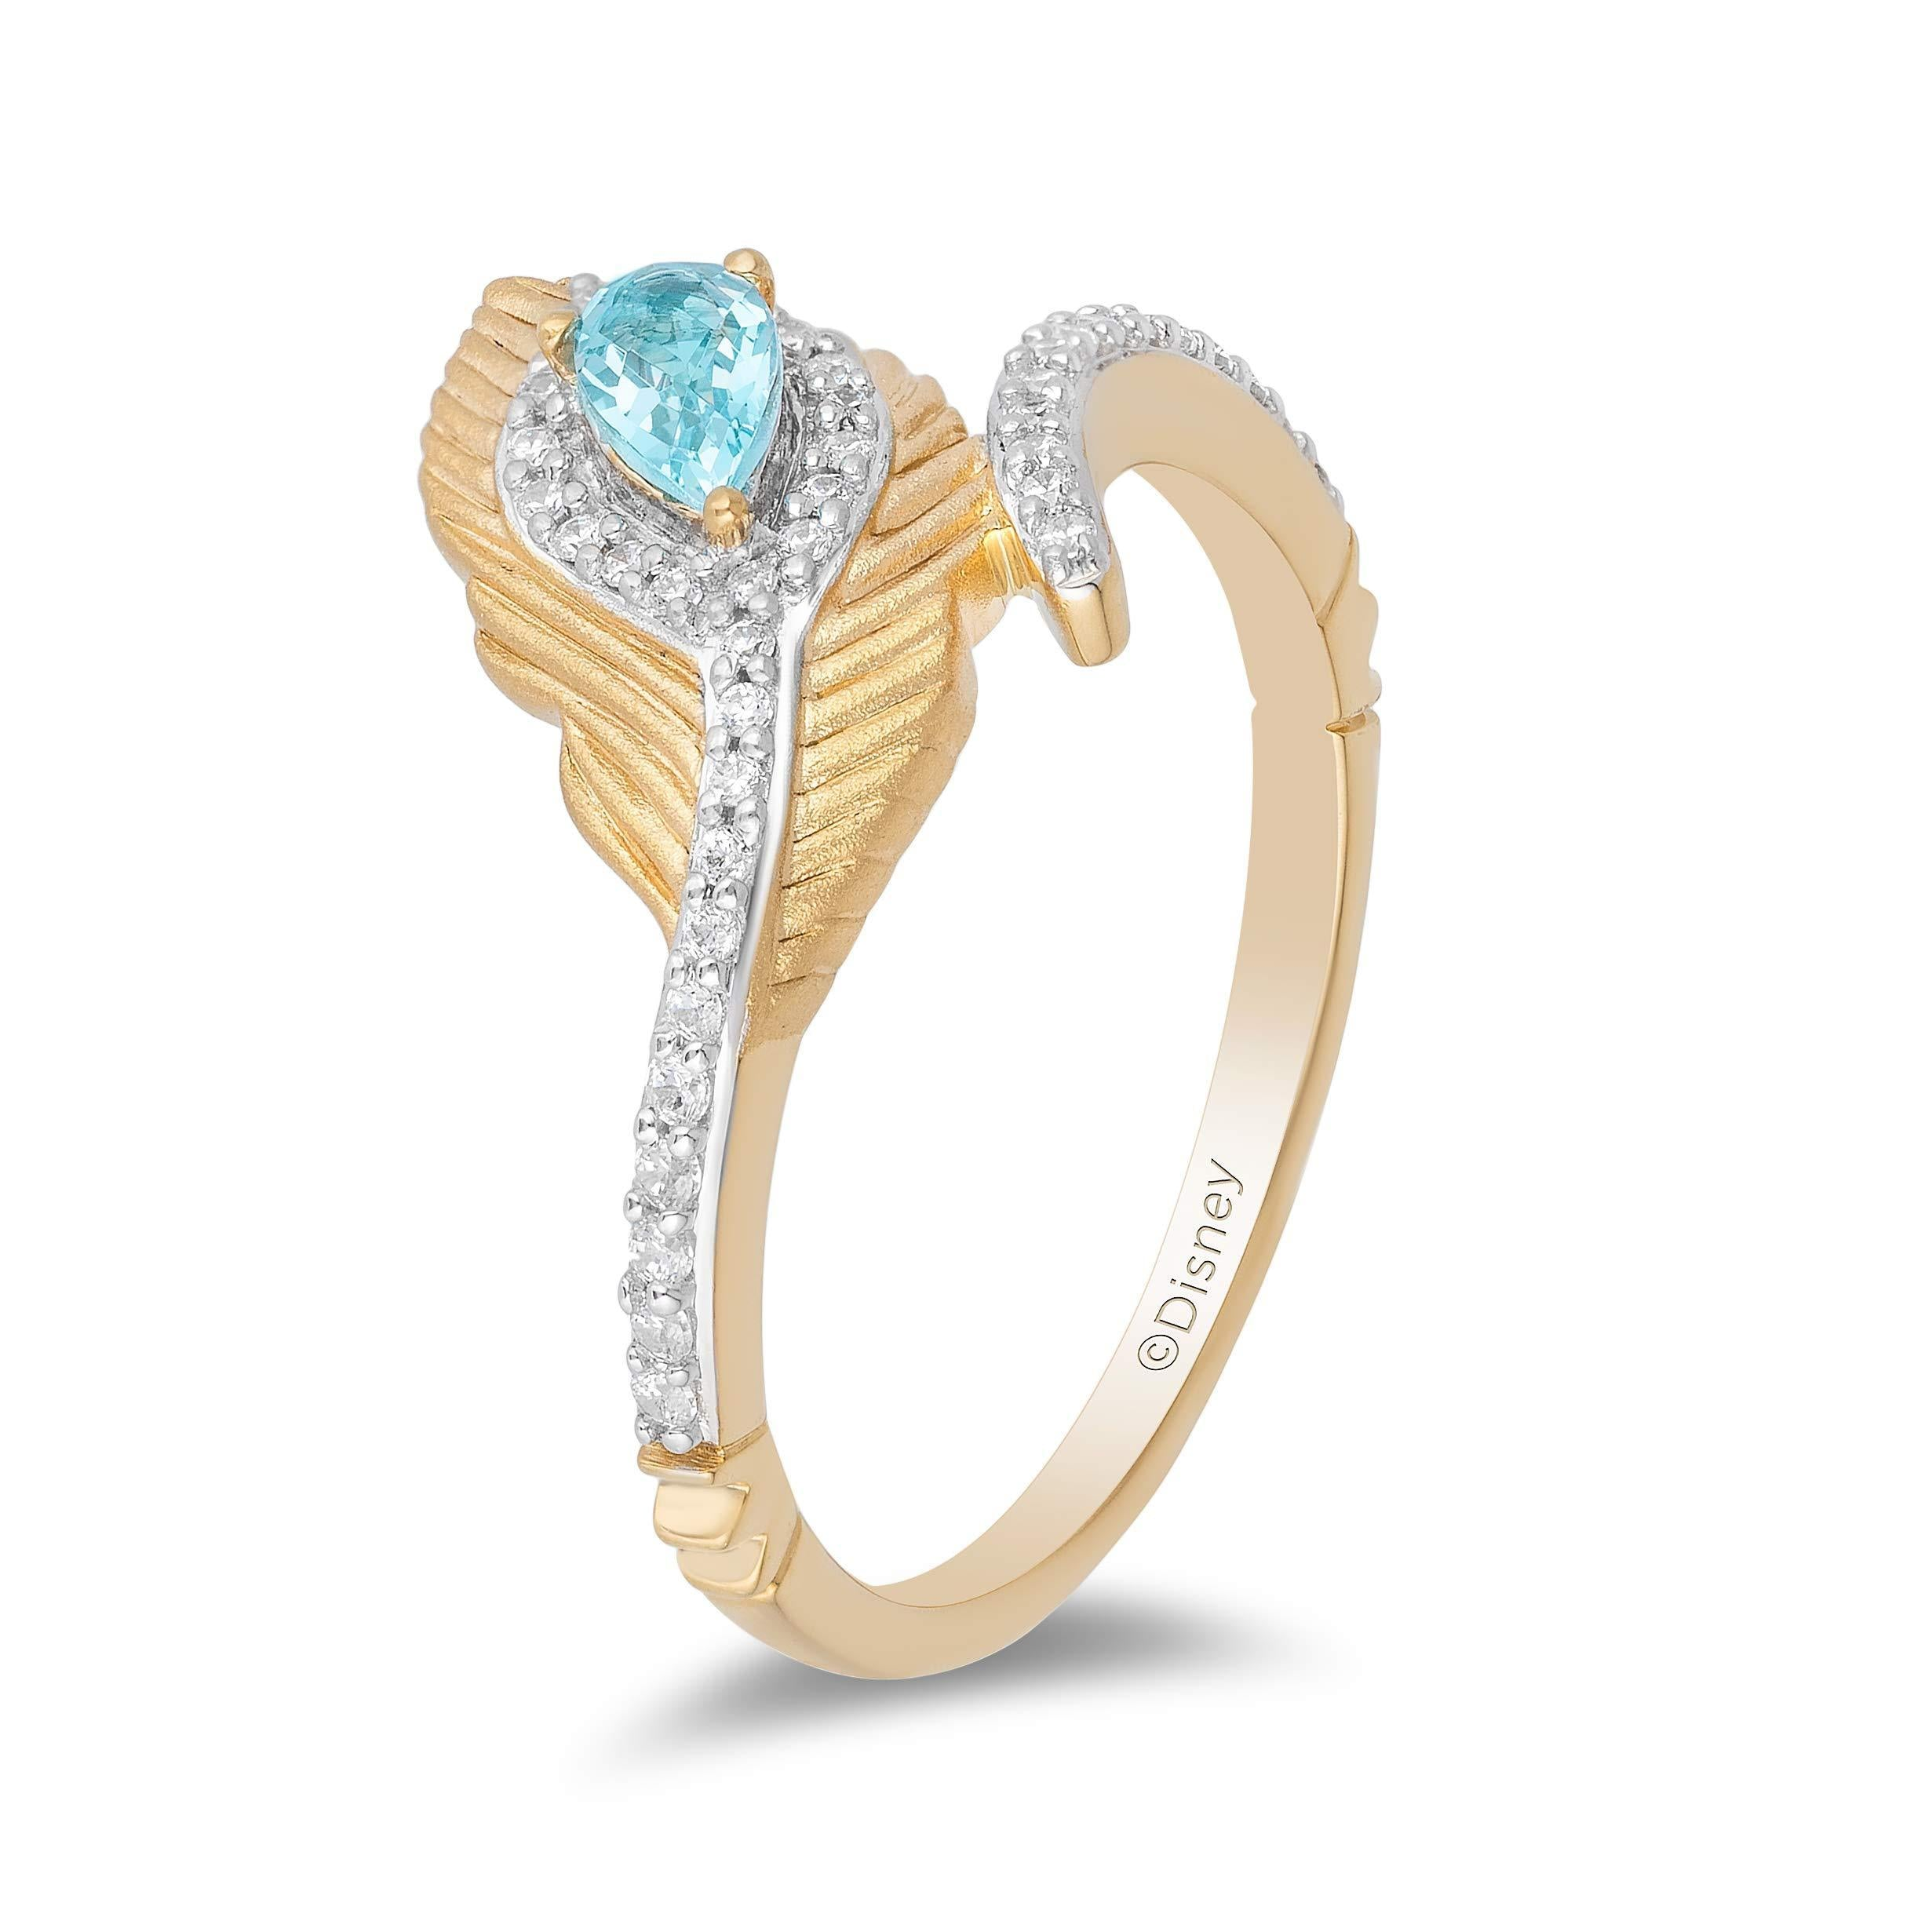 enchanted_disney-jasmine_peacock_feather_ring-9k_yellow_gold_0.16CTTW_2